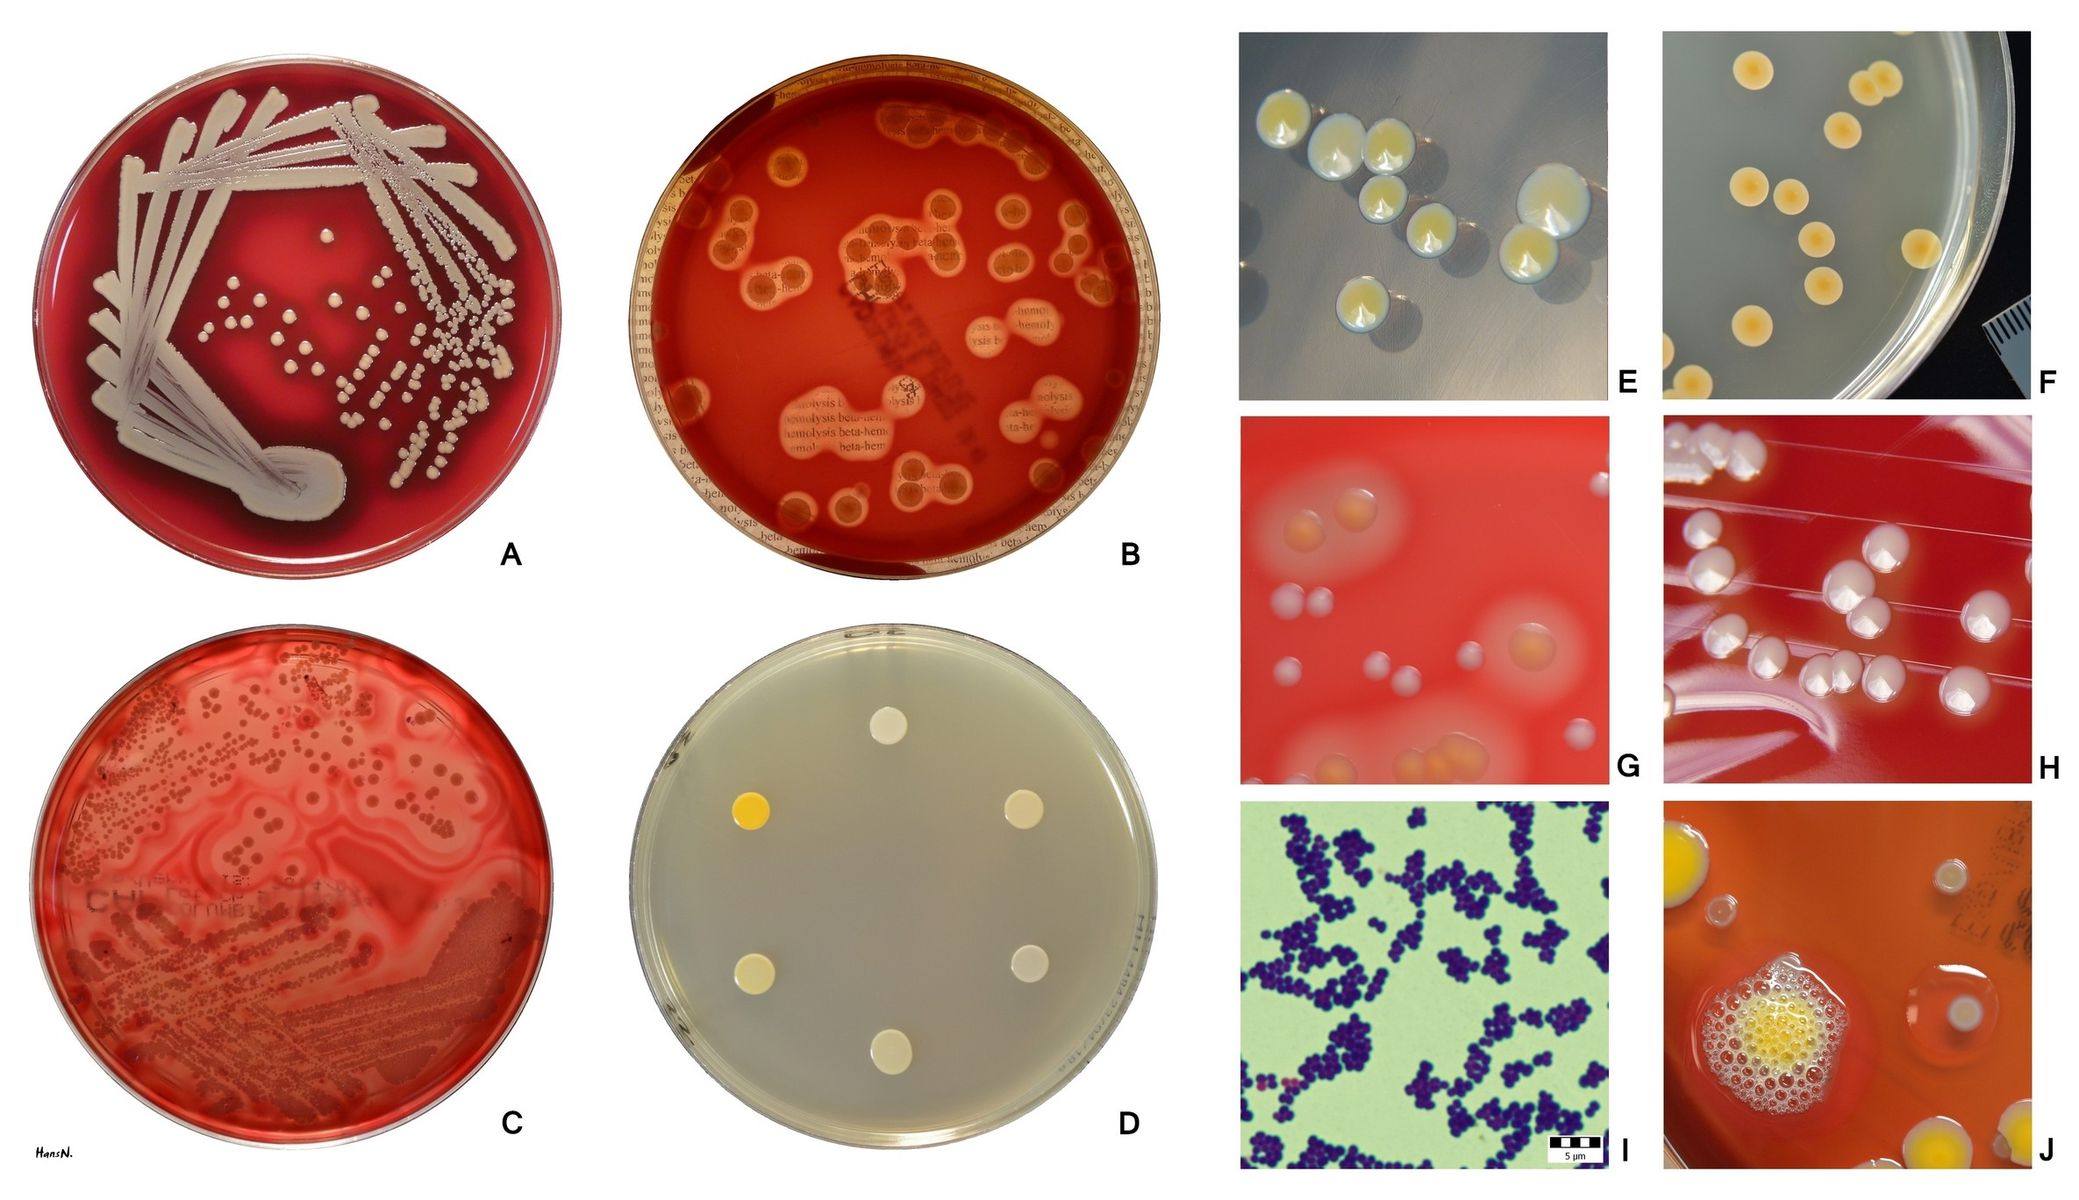 Microbiology with Tammy at Bel-Rea